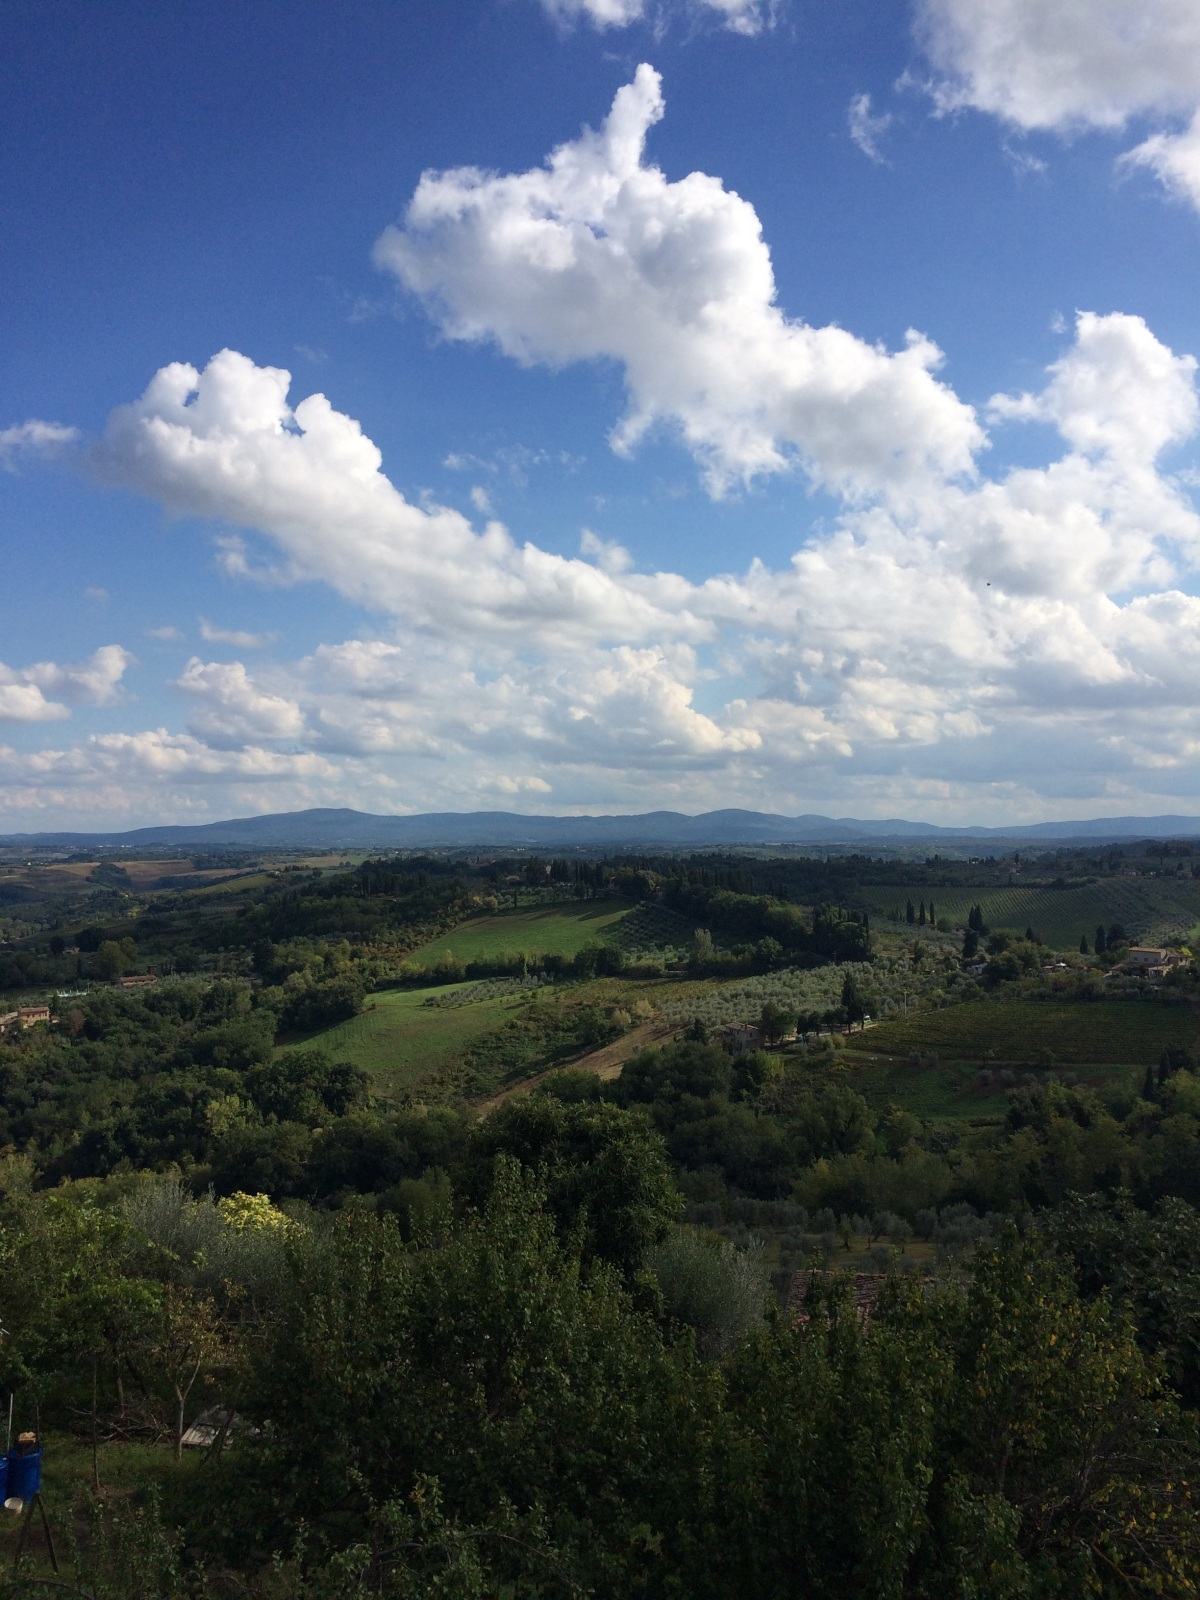 Tuscany in Pictures